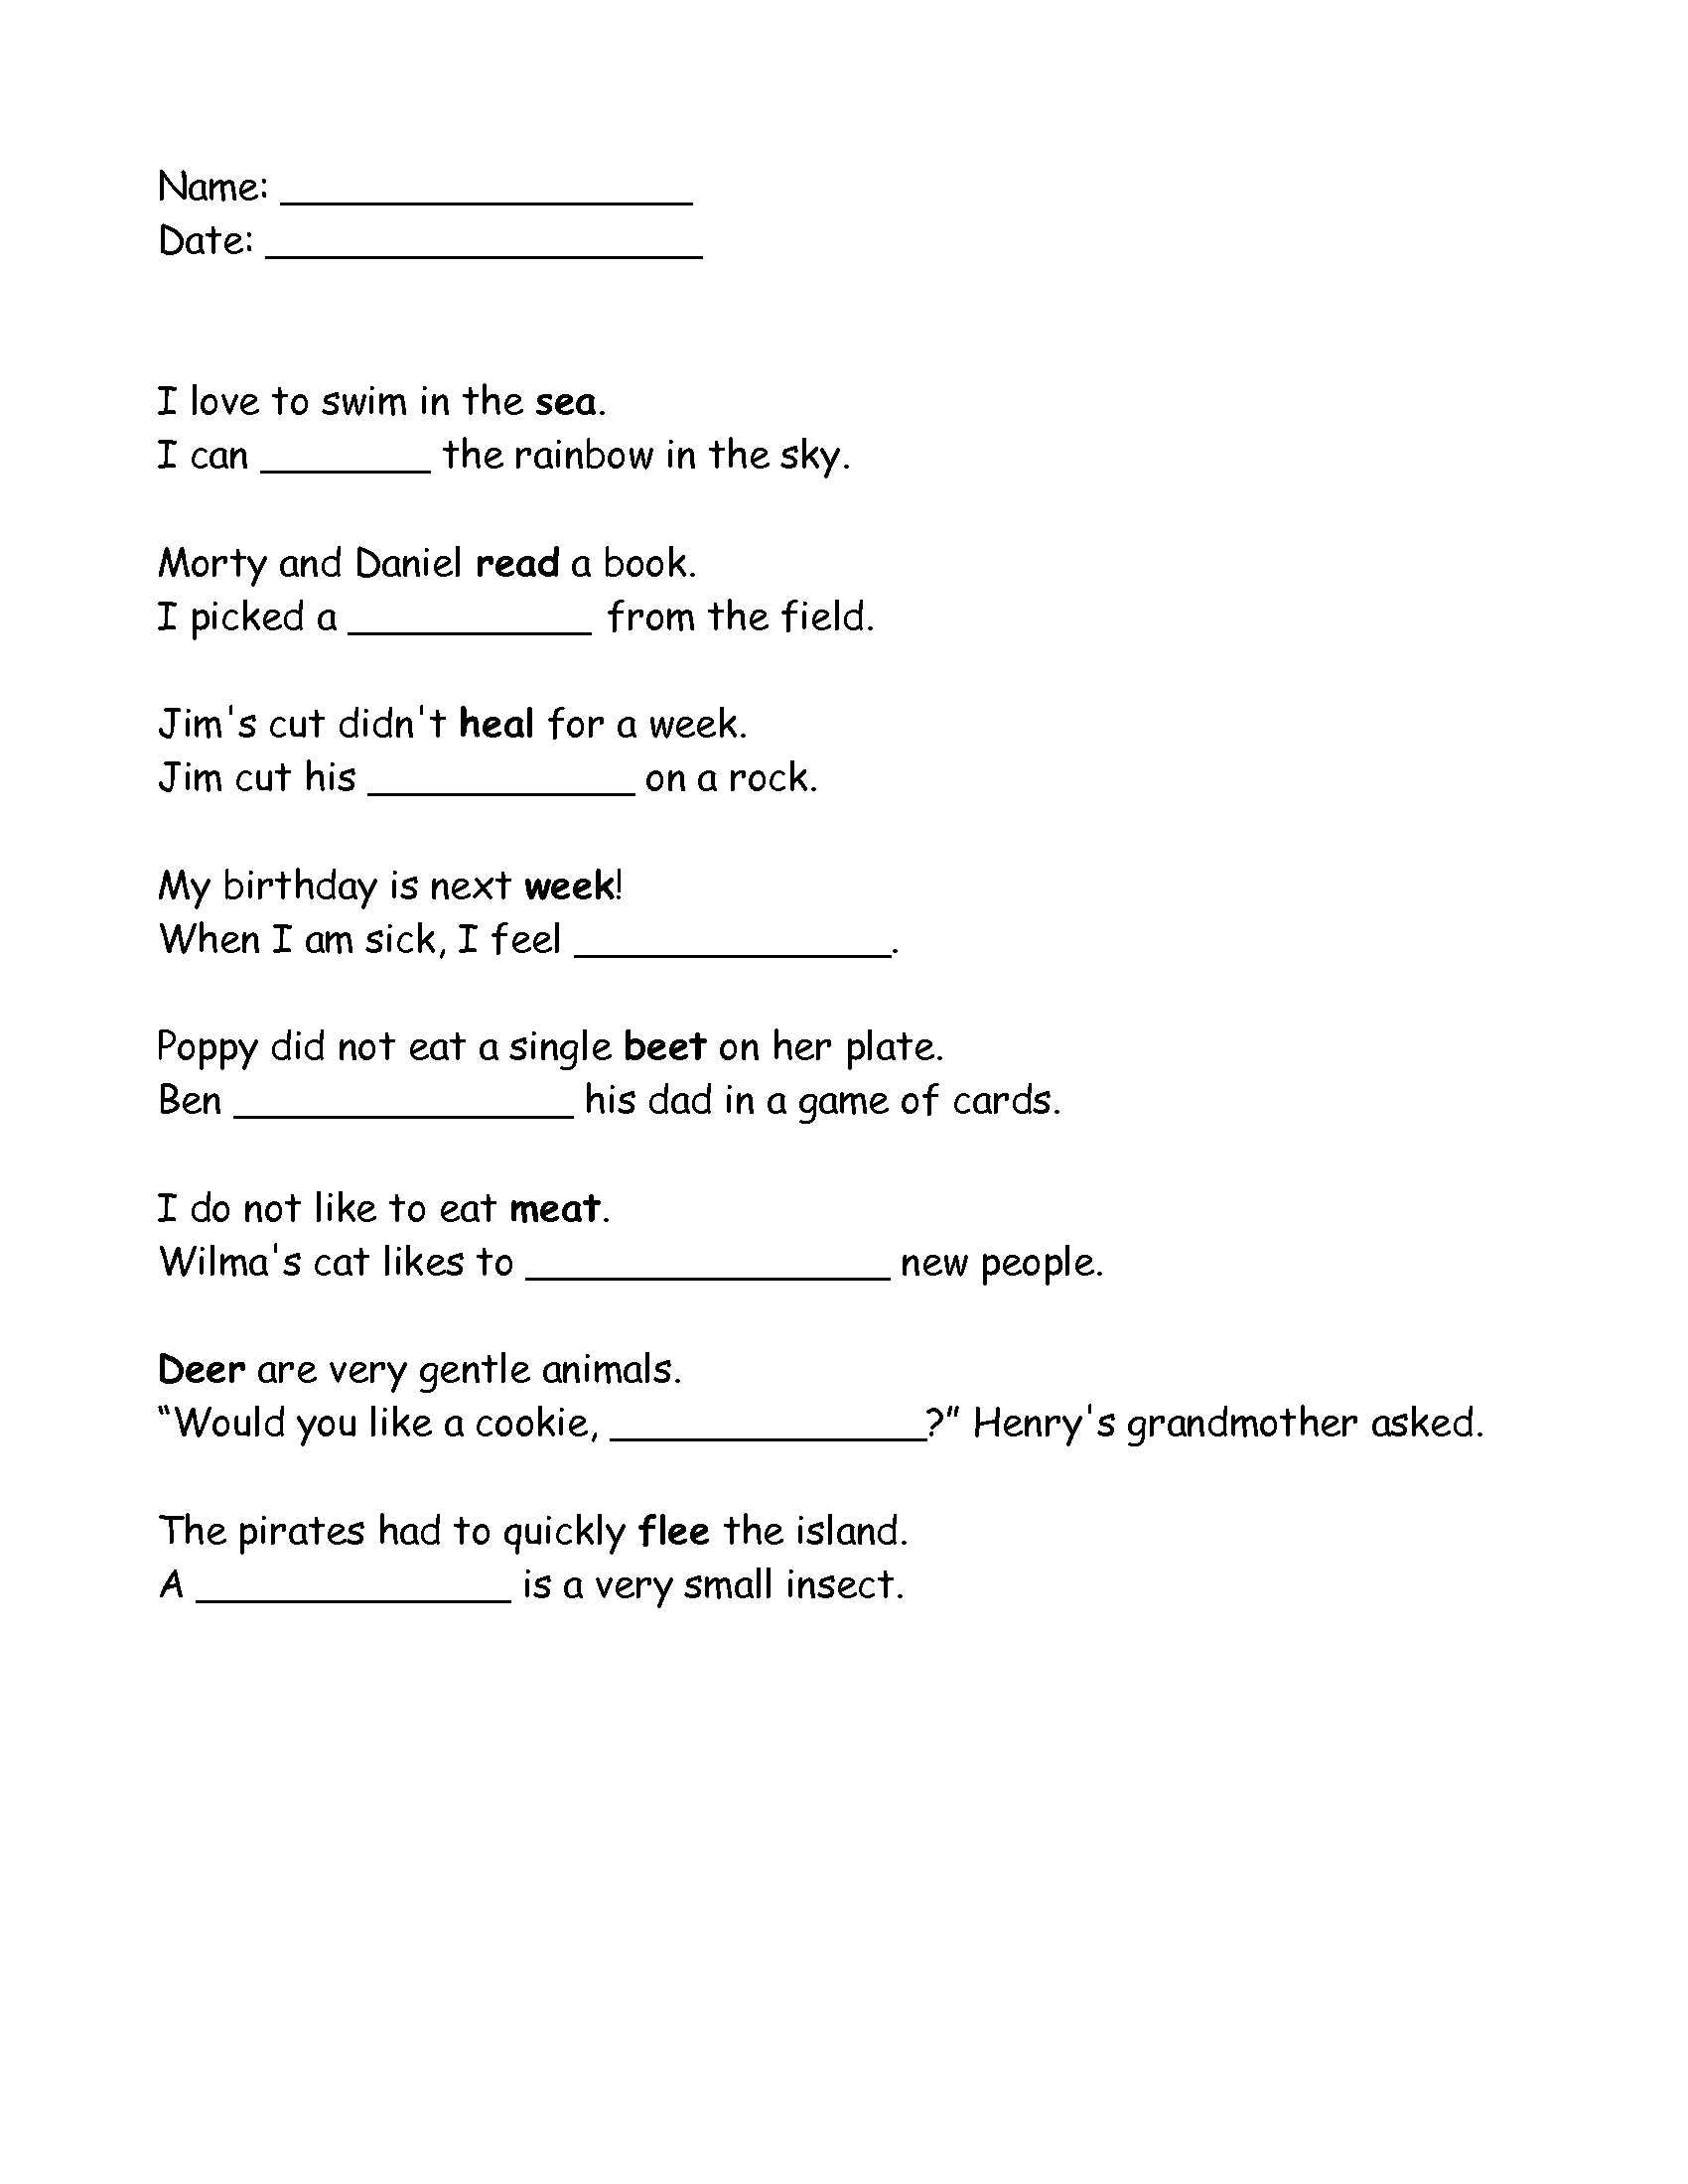 High School Reading Worksheets Grade  Homophones Ee And Ea Worksheet That I Made Click On  Translation Math Worksheets Excel with Wind In The Willows Worksheets Grade  Homophones Ee And Ea Worksheet That I Made Click On Image For Multiplying Fractions And Mixed Numbers Worksheet Pdf